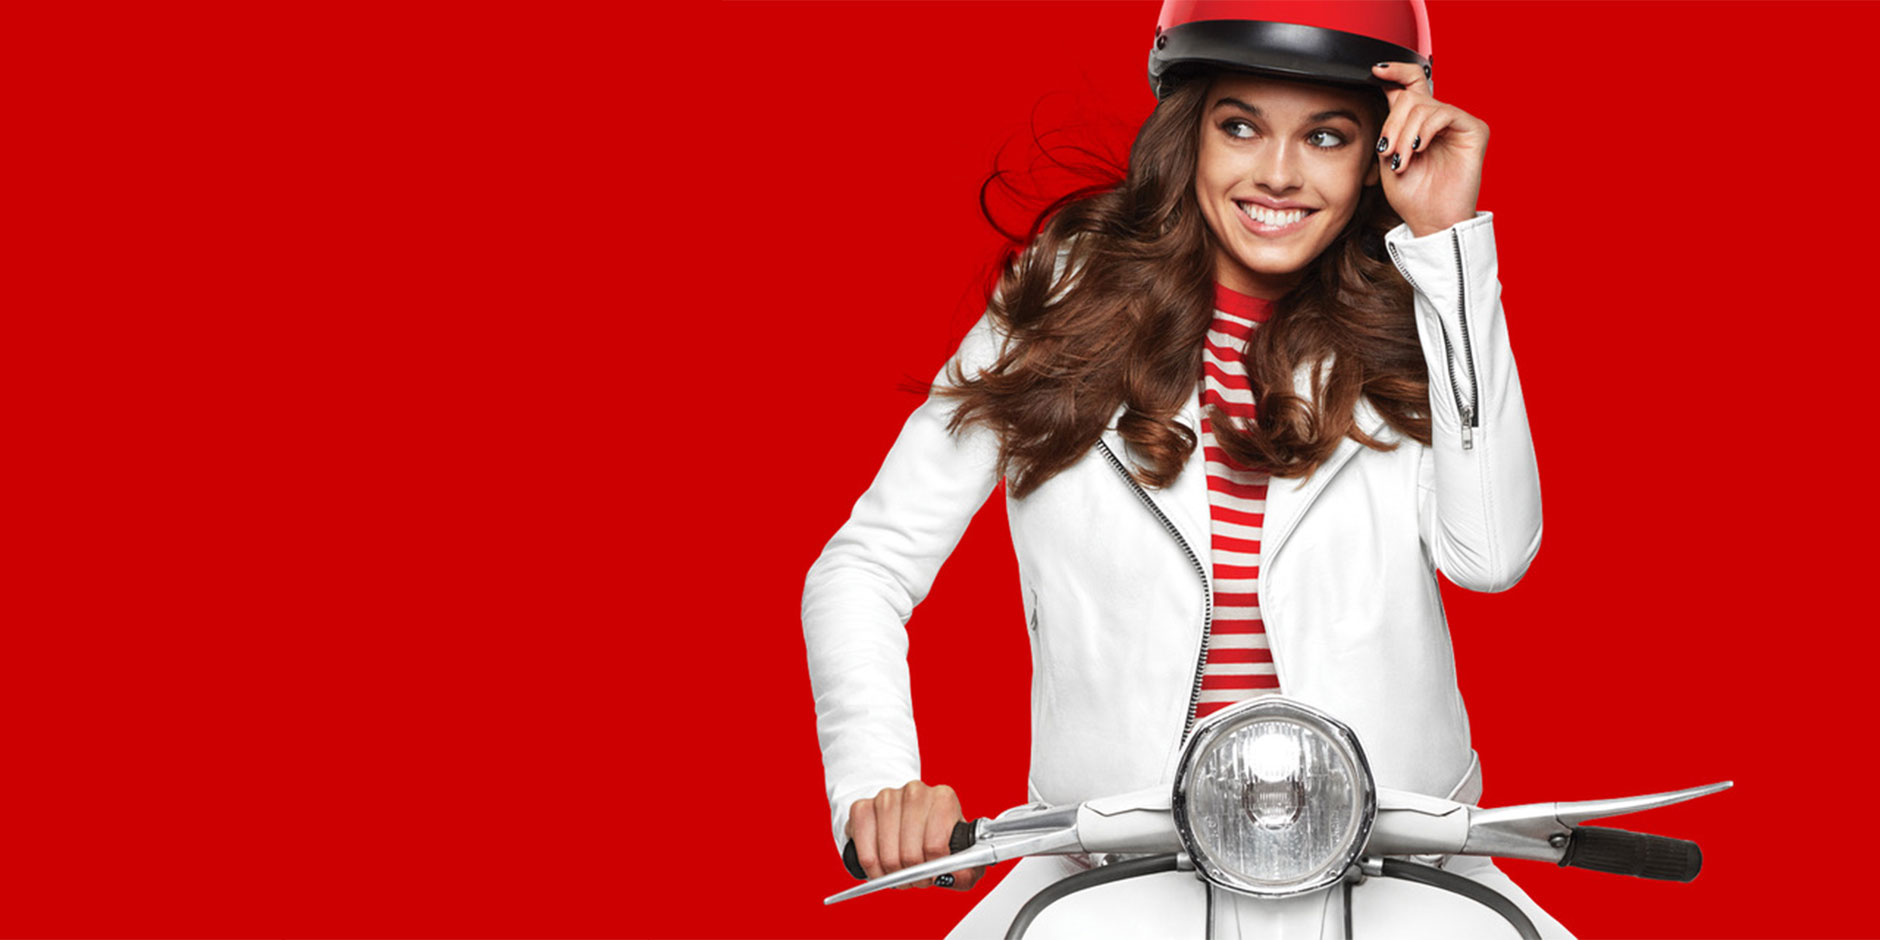 A woman wearing a red helmet and white top rides a moped